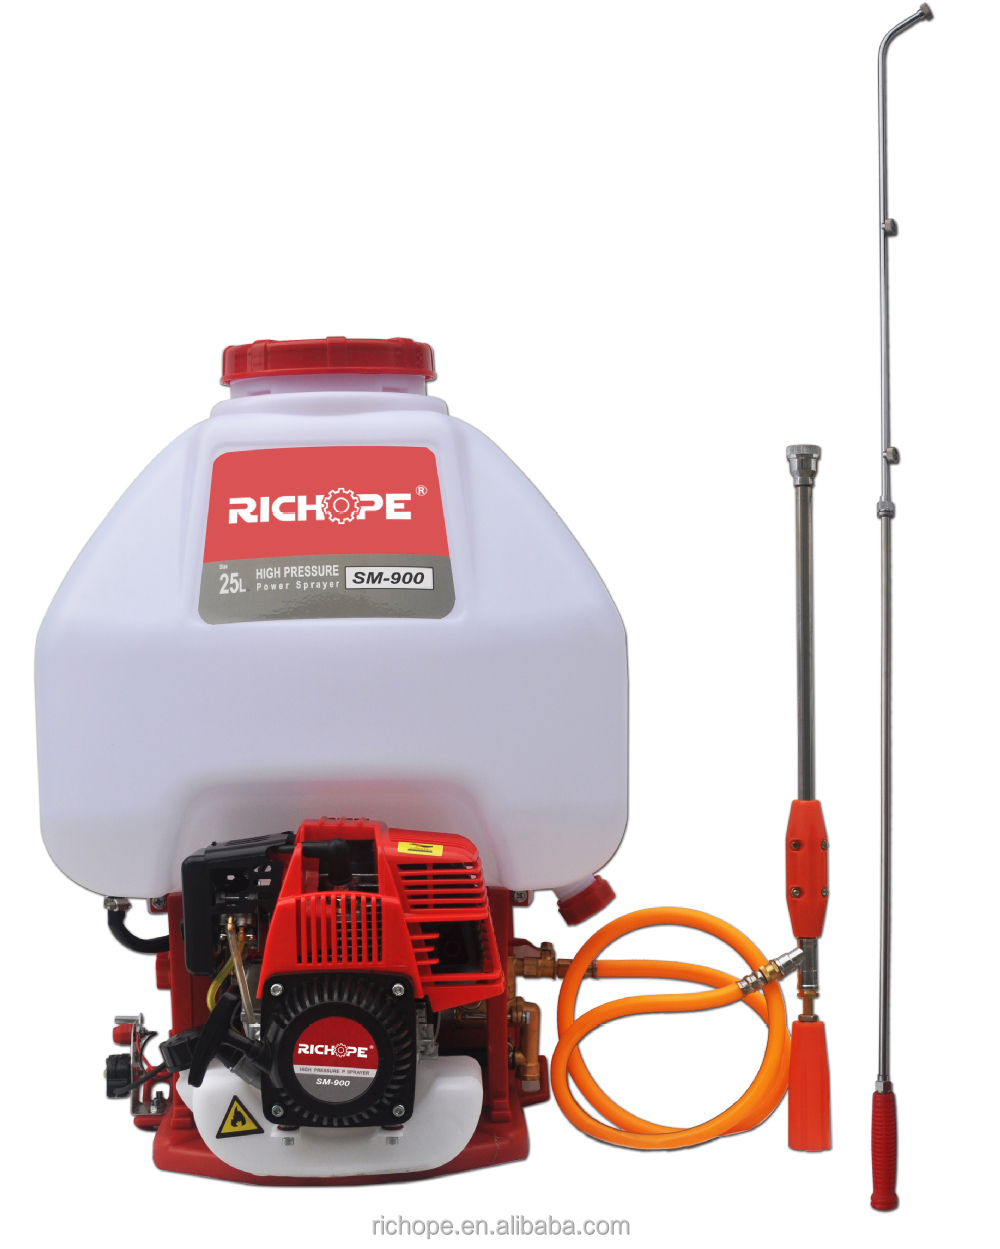 Gx35 Engine Power Sprayer From Chinese Top Quaility Manufacturer ...